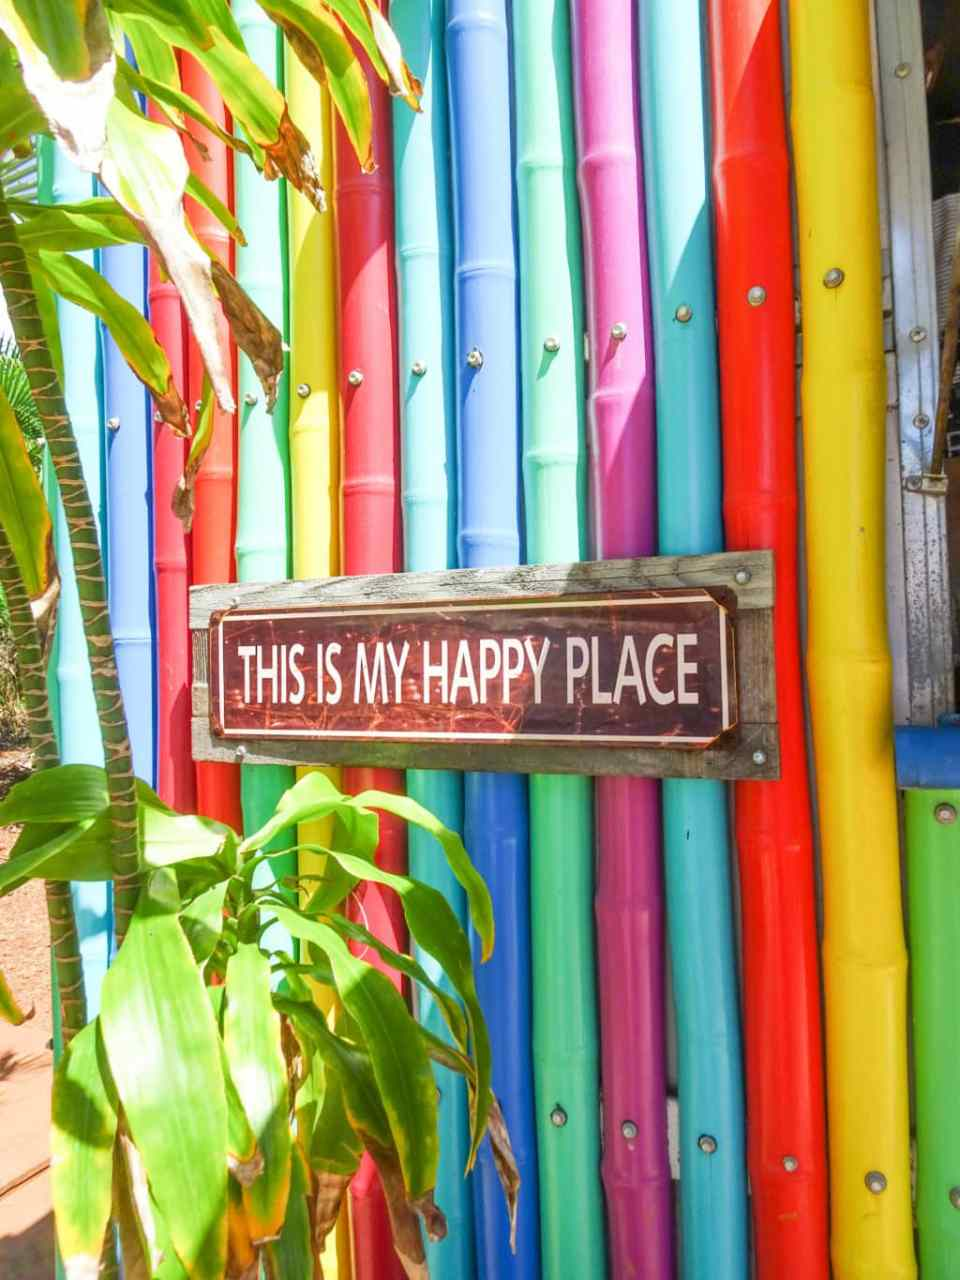 This is my Happy place rainbow coloured sign in Hawaii